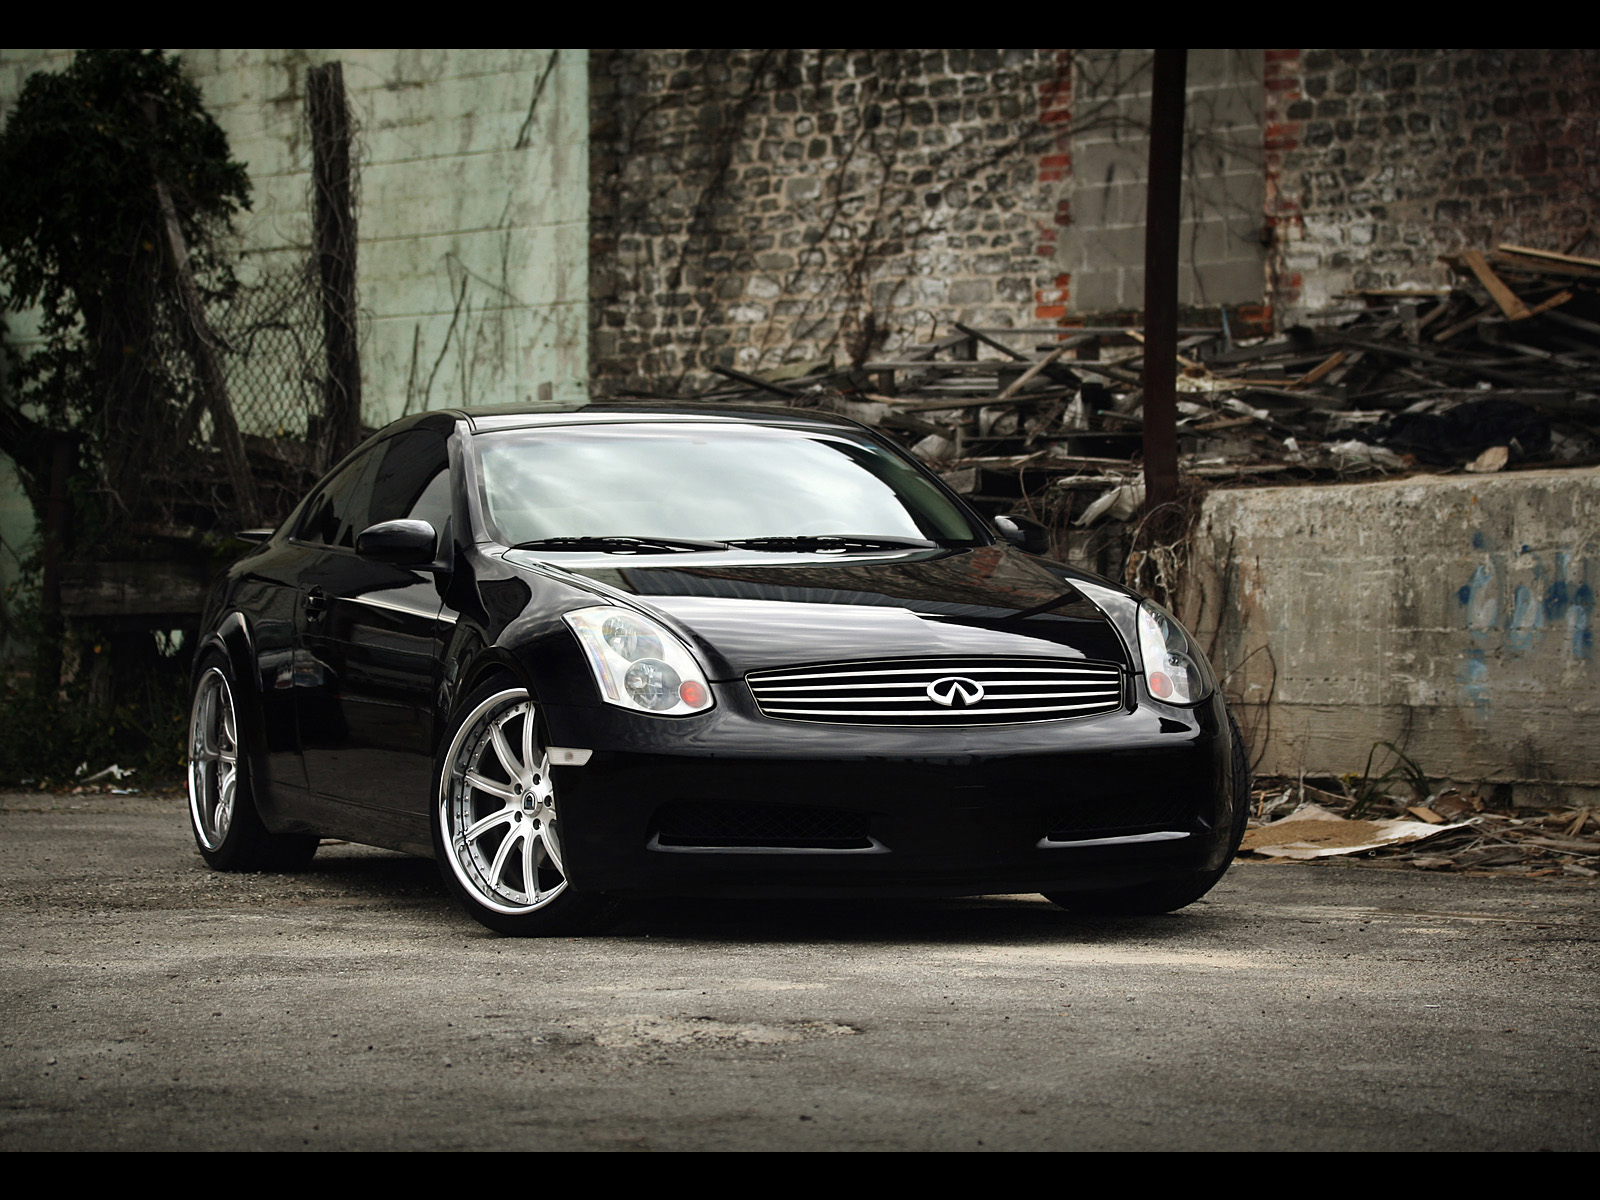 Infiniti G35 Sport Coupe   Photography by Webb Bland Product Shot 1600x1200